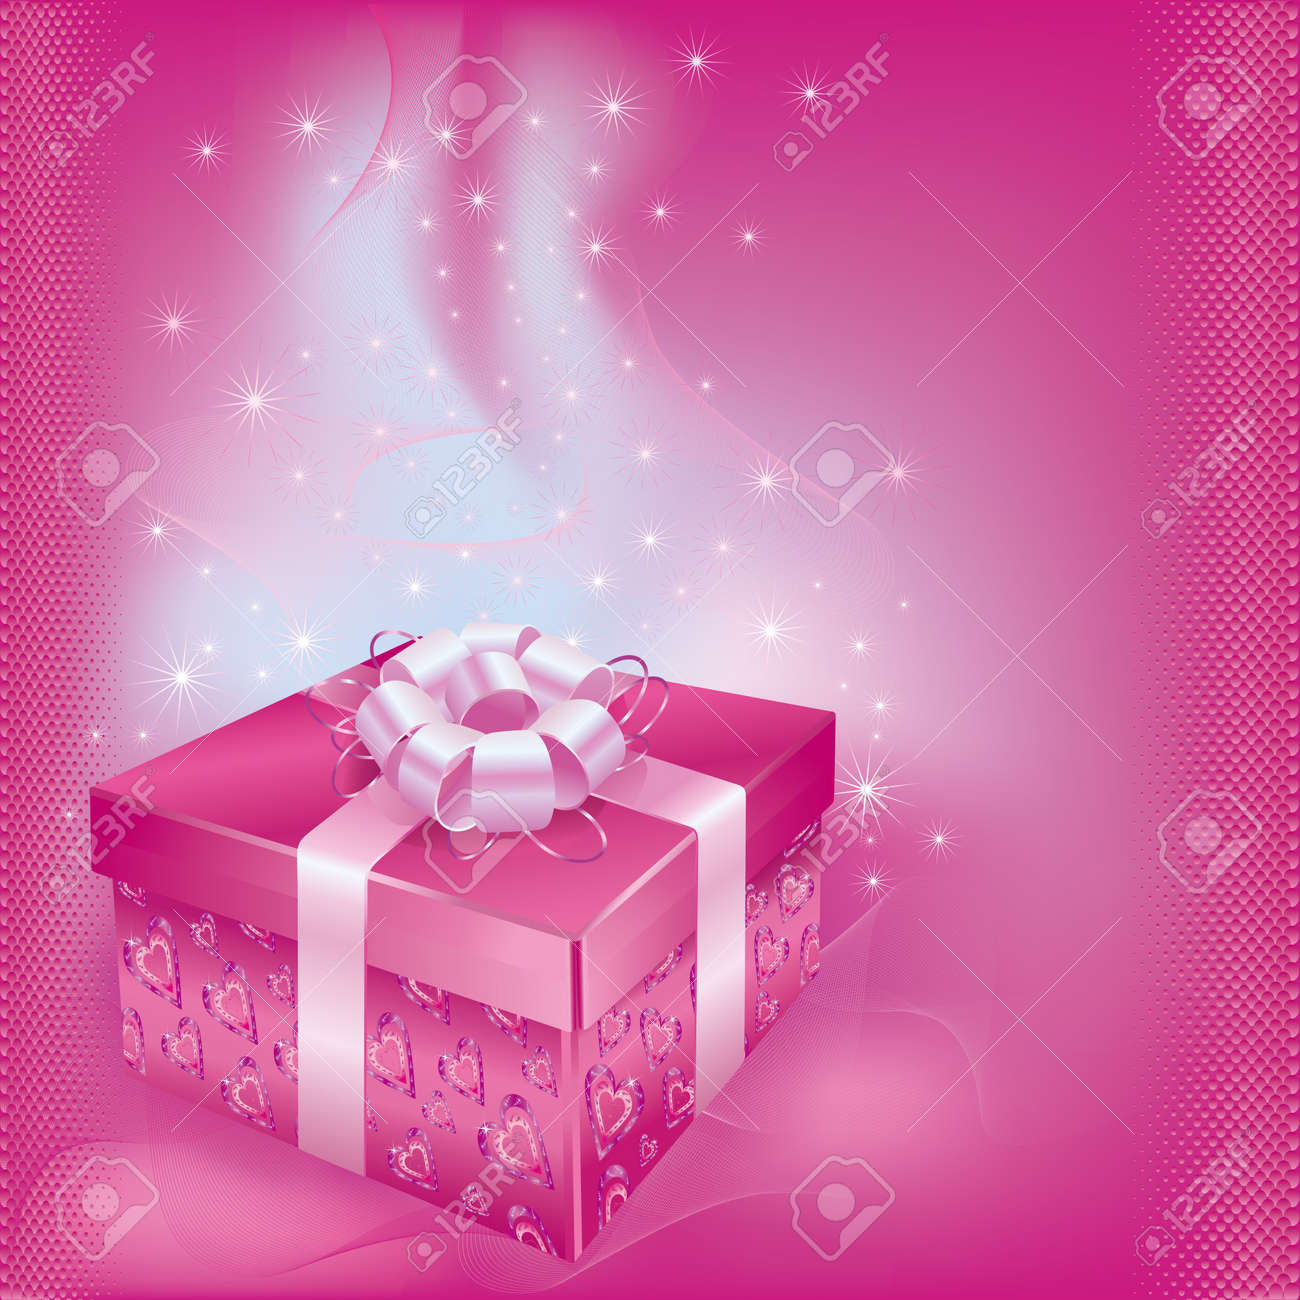 Bright festive card with gift box and decorations on pink bacground for life events  Vector illustration Stock Vector - 12028562